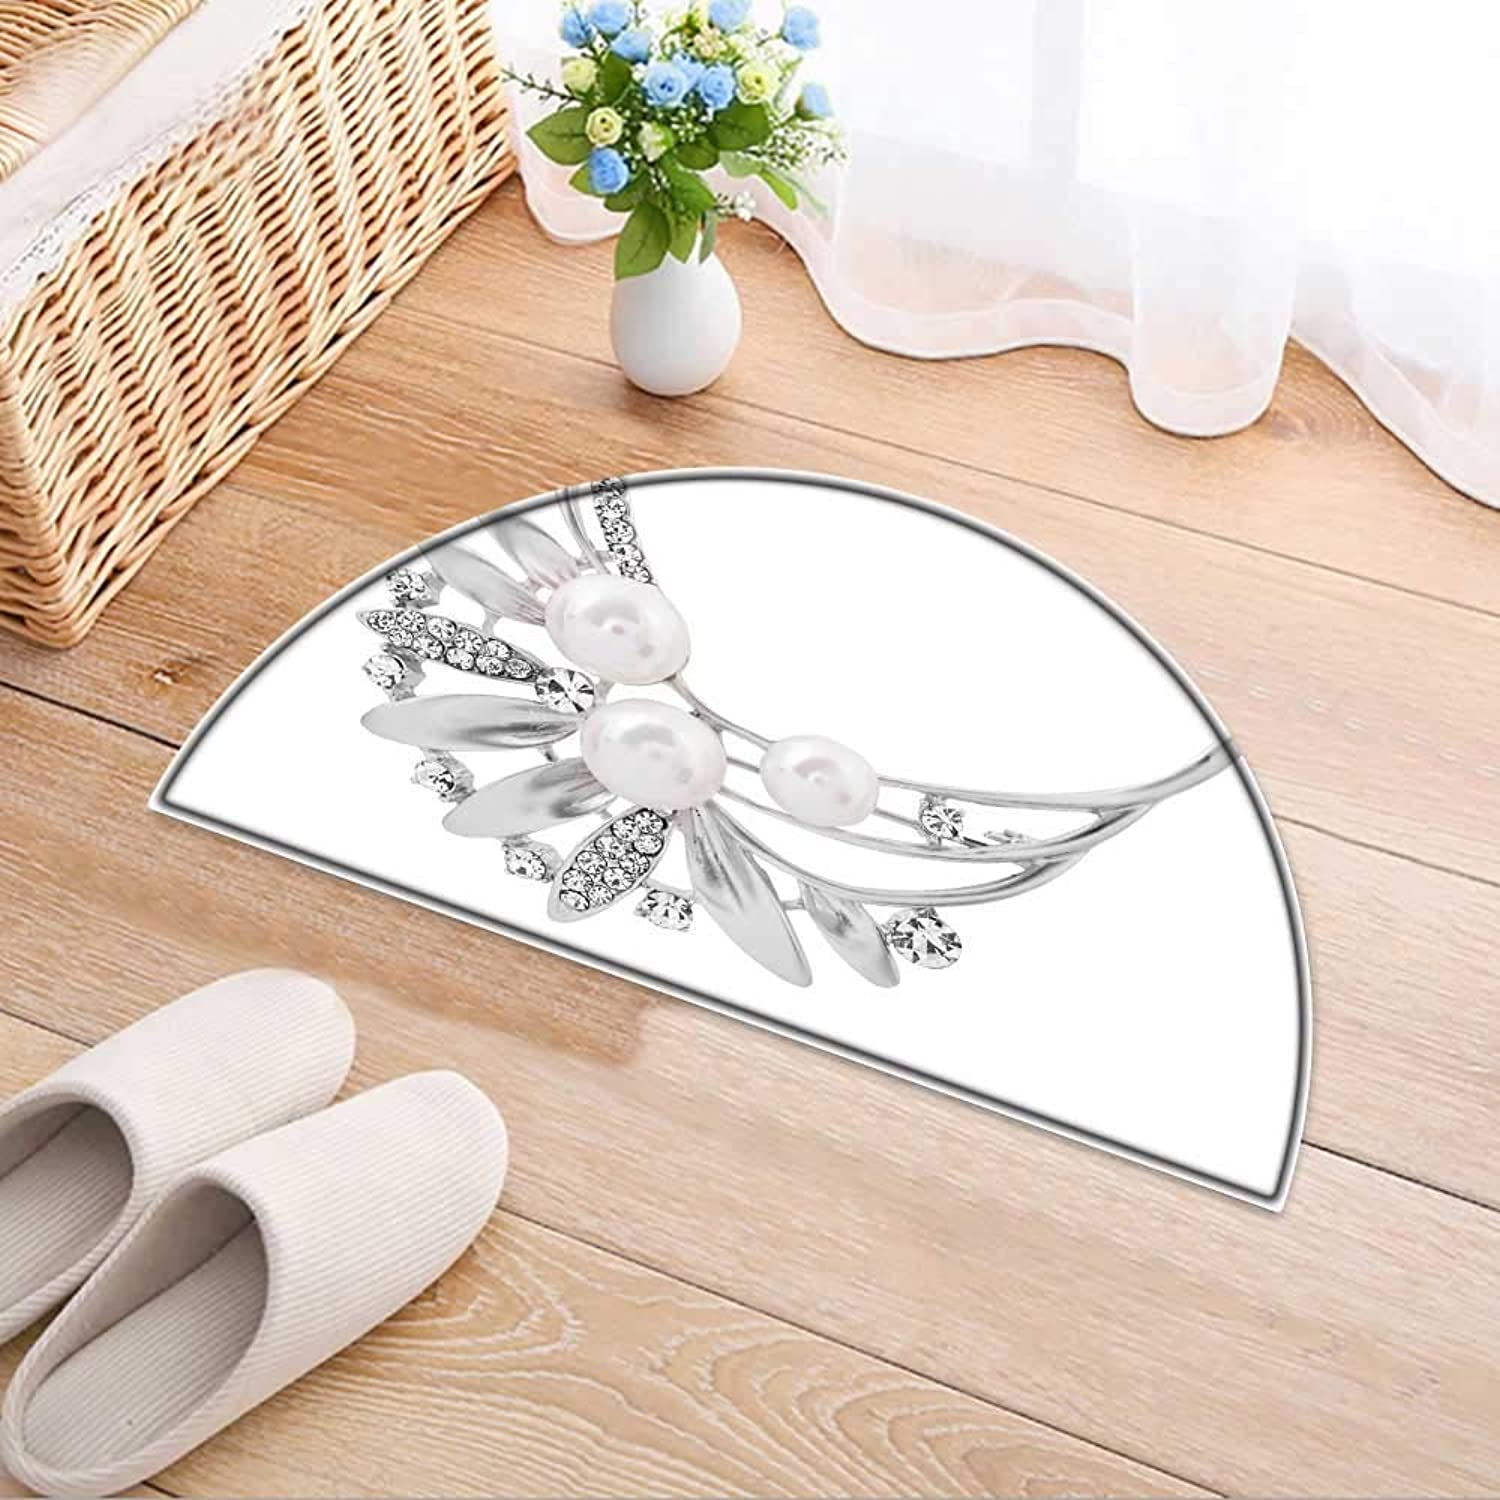 Kitchen Rugs Floor mats Silver Brooch Isolated with Pearls on White Background Waterproof Semi-Circular Door Mat Floor Mats W47 x H32 INCH